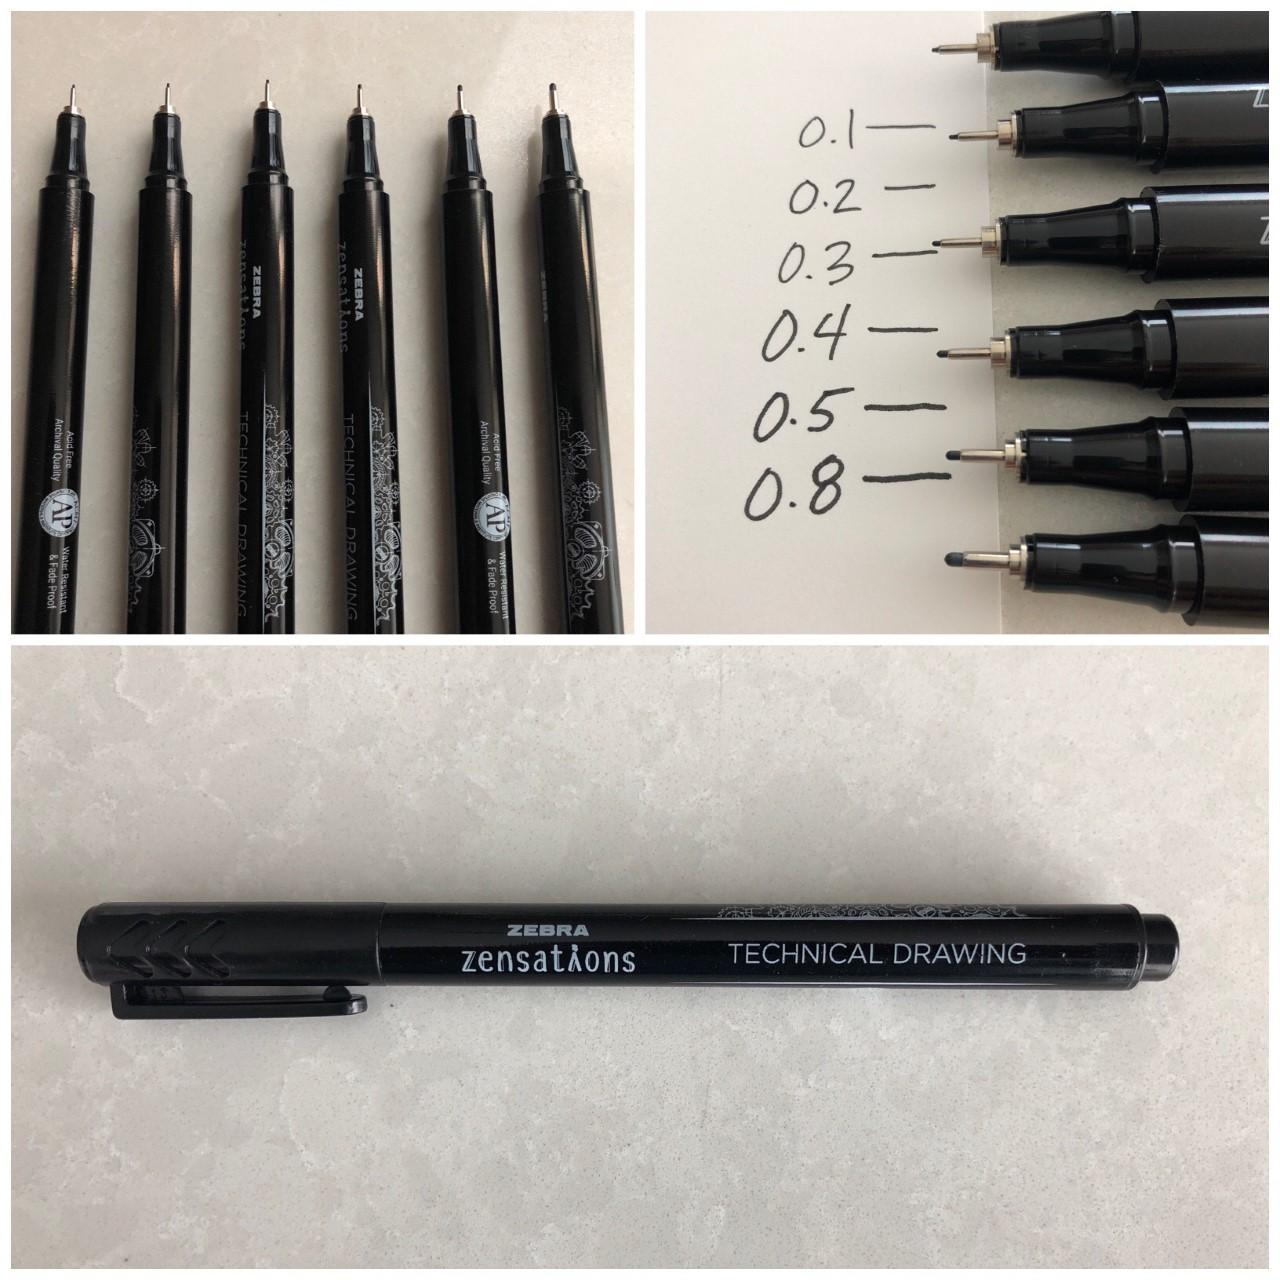 Zensations Technical Pens with varying point tip sizes